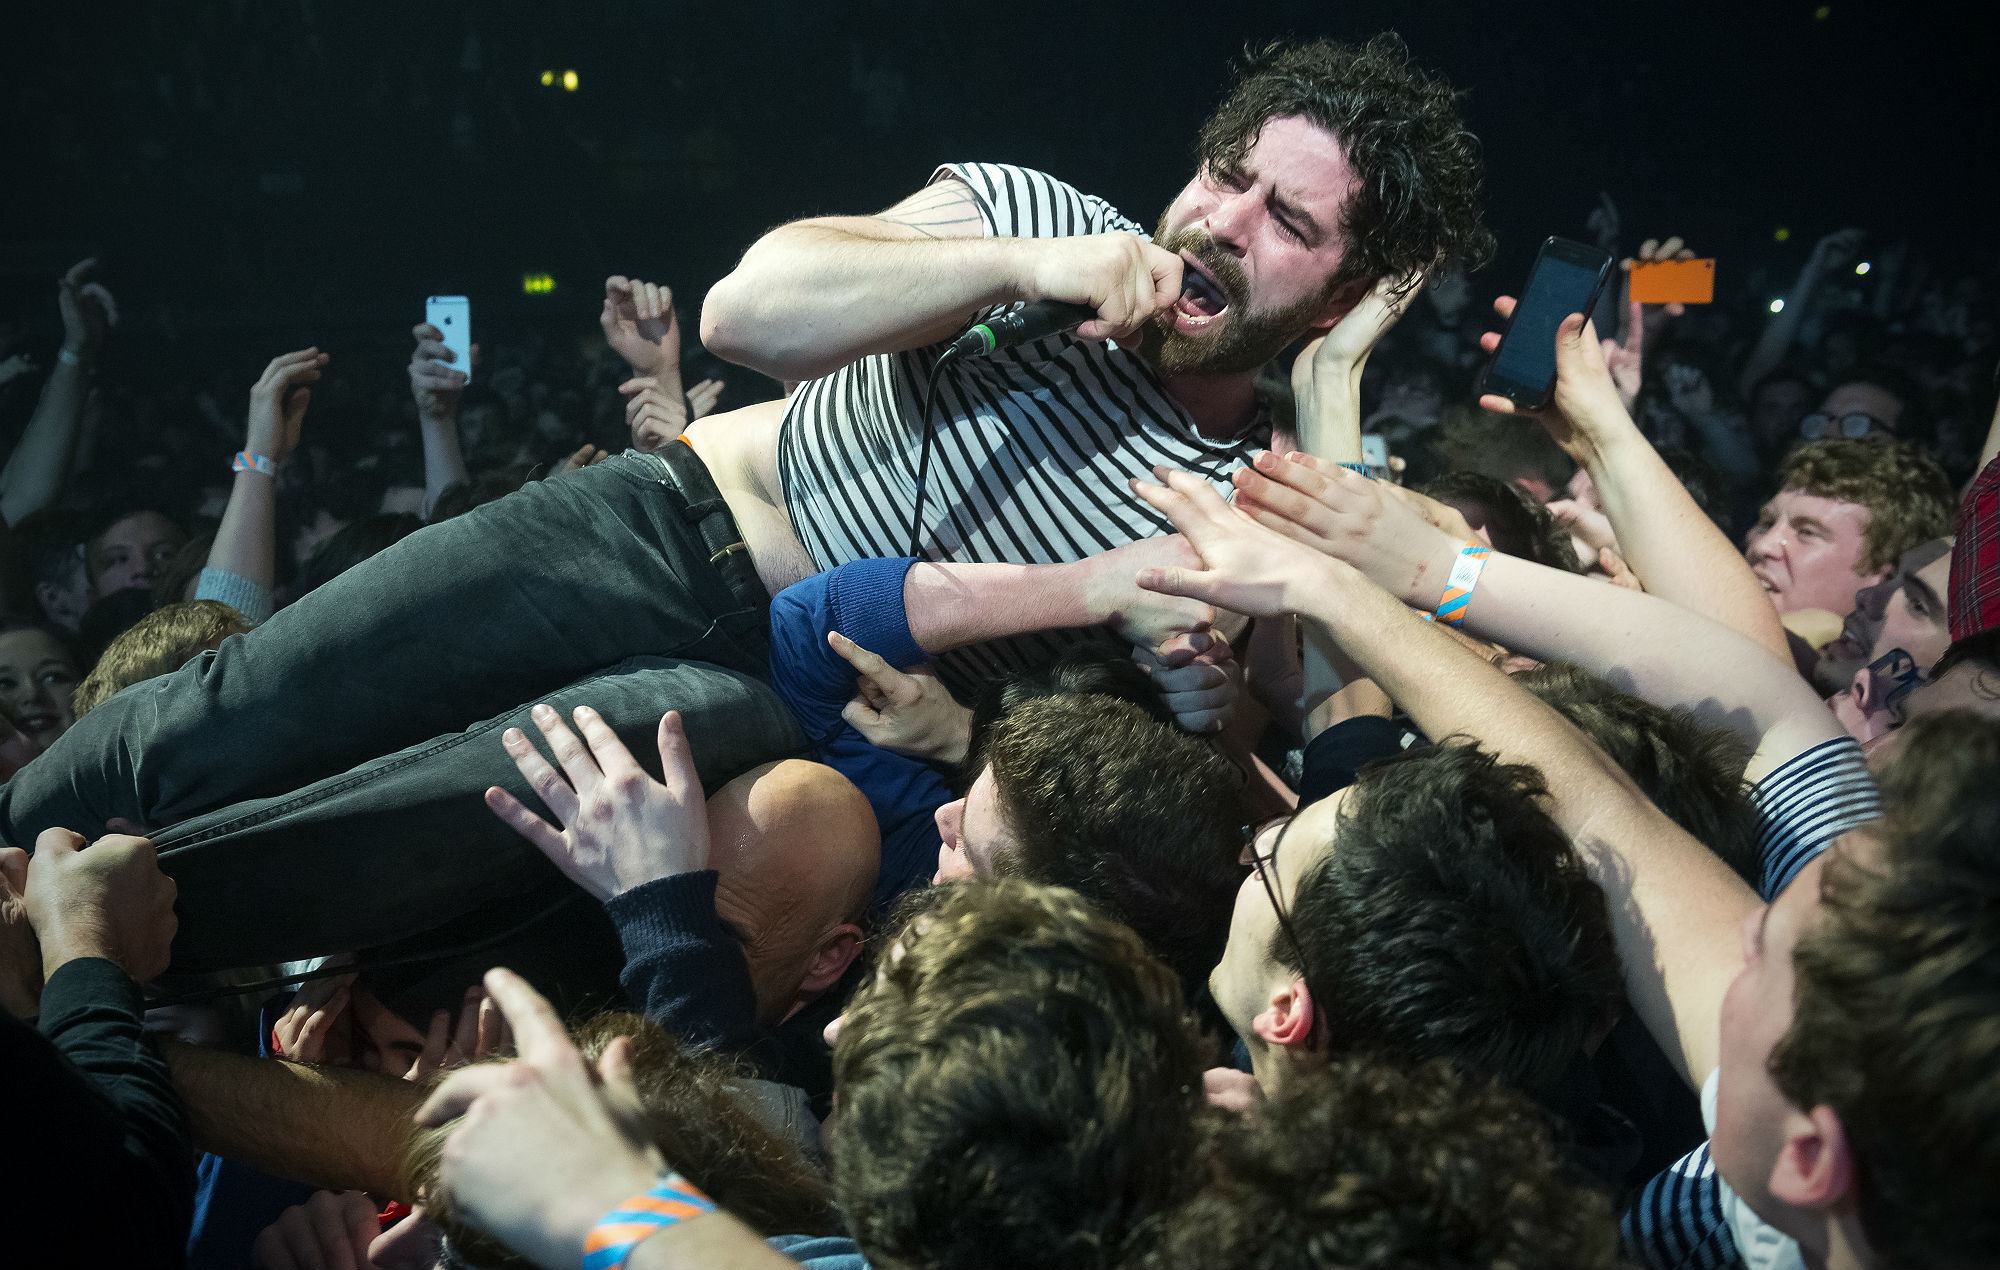 Yannis Philippakis of Foals performs at the SSE Arena, Wembley, on February 16, 2016 in London, England. (Photo by Matthew Baker/Getty Images)